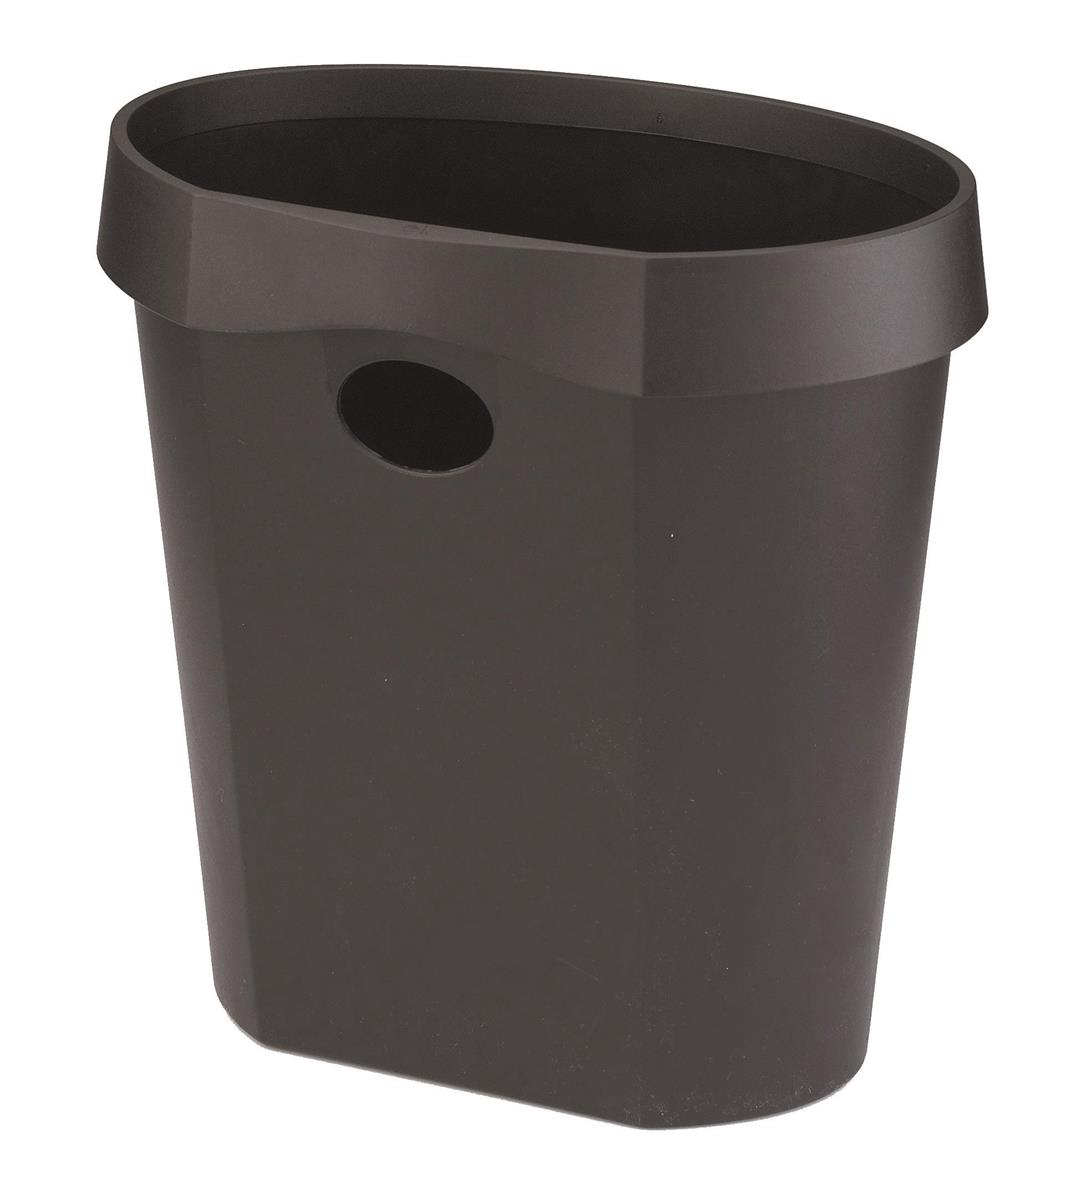 Image for Avery DR500 Waste Bin with Rim Flat Back 18 Litres W350xD250xH340mm Black Ref DR500BLK